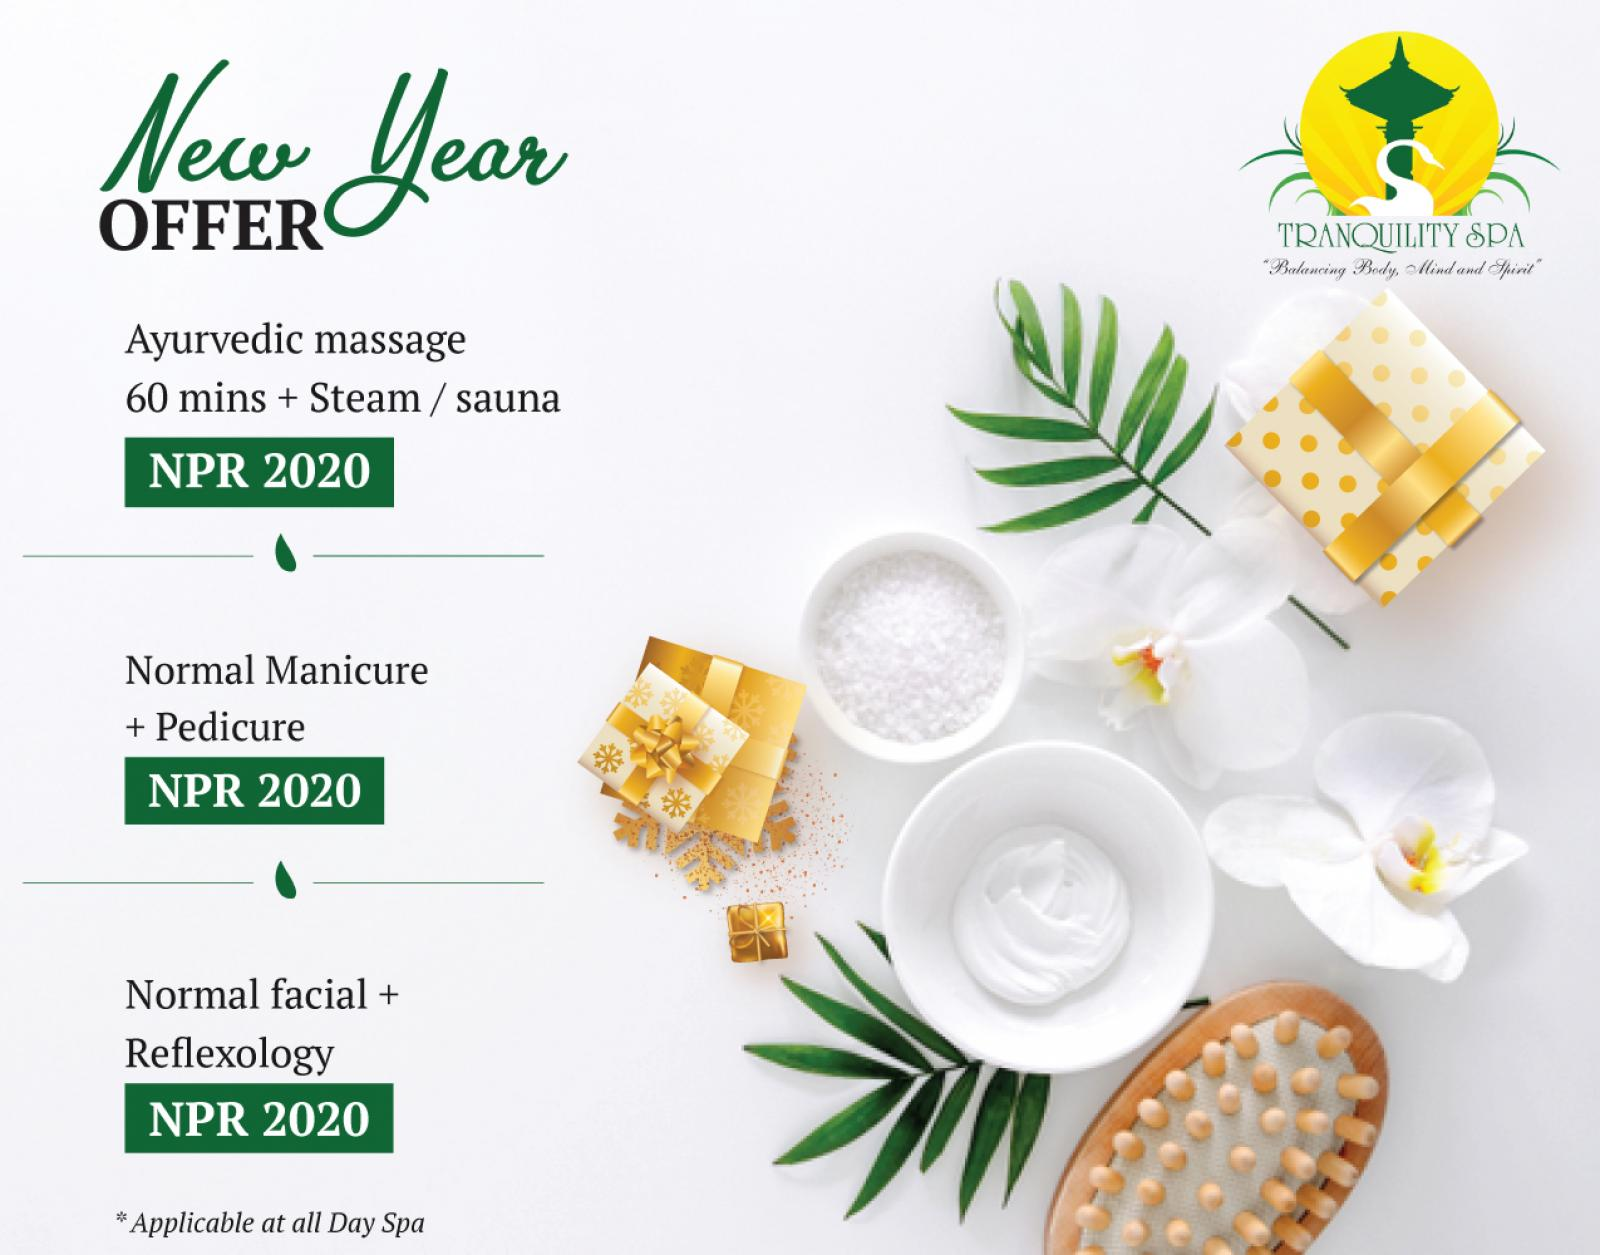 New Year Offer 2020